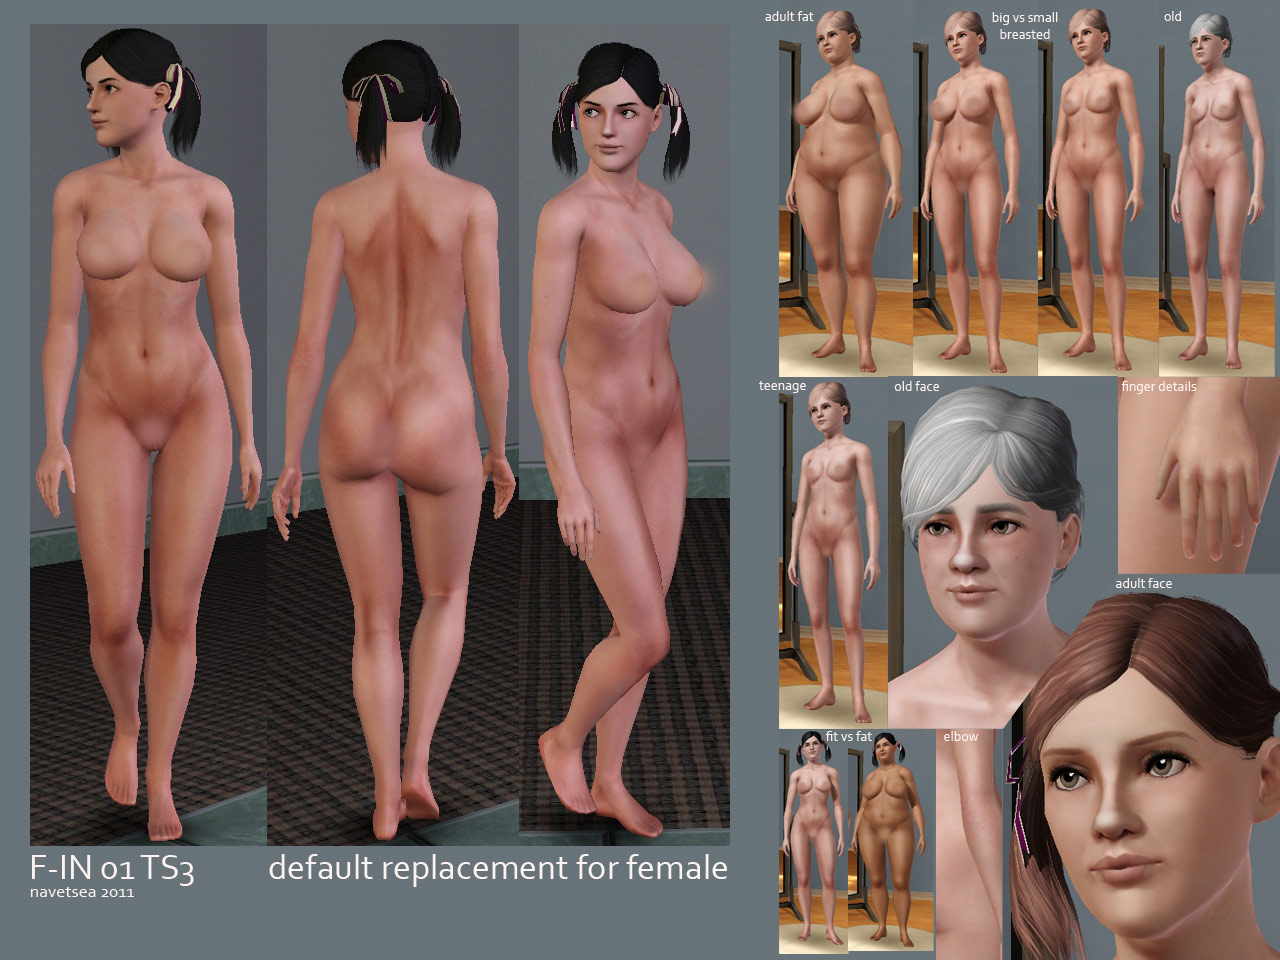 The sims 3 sex mod exploited pics